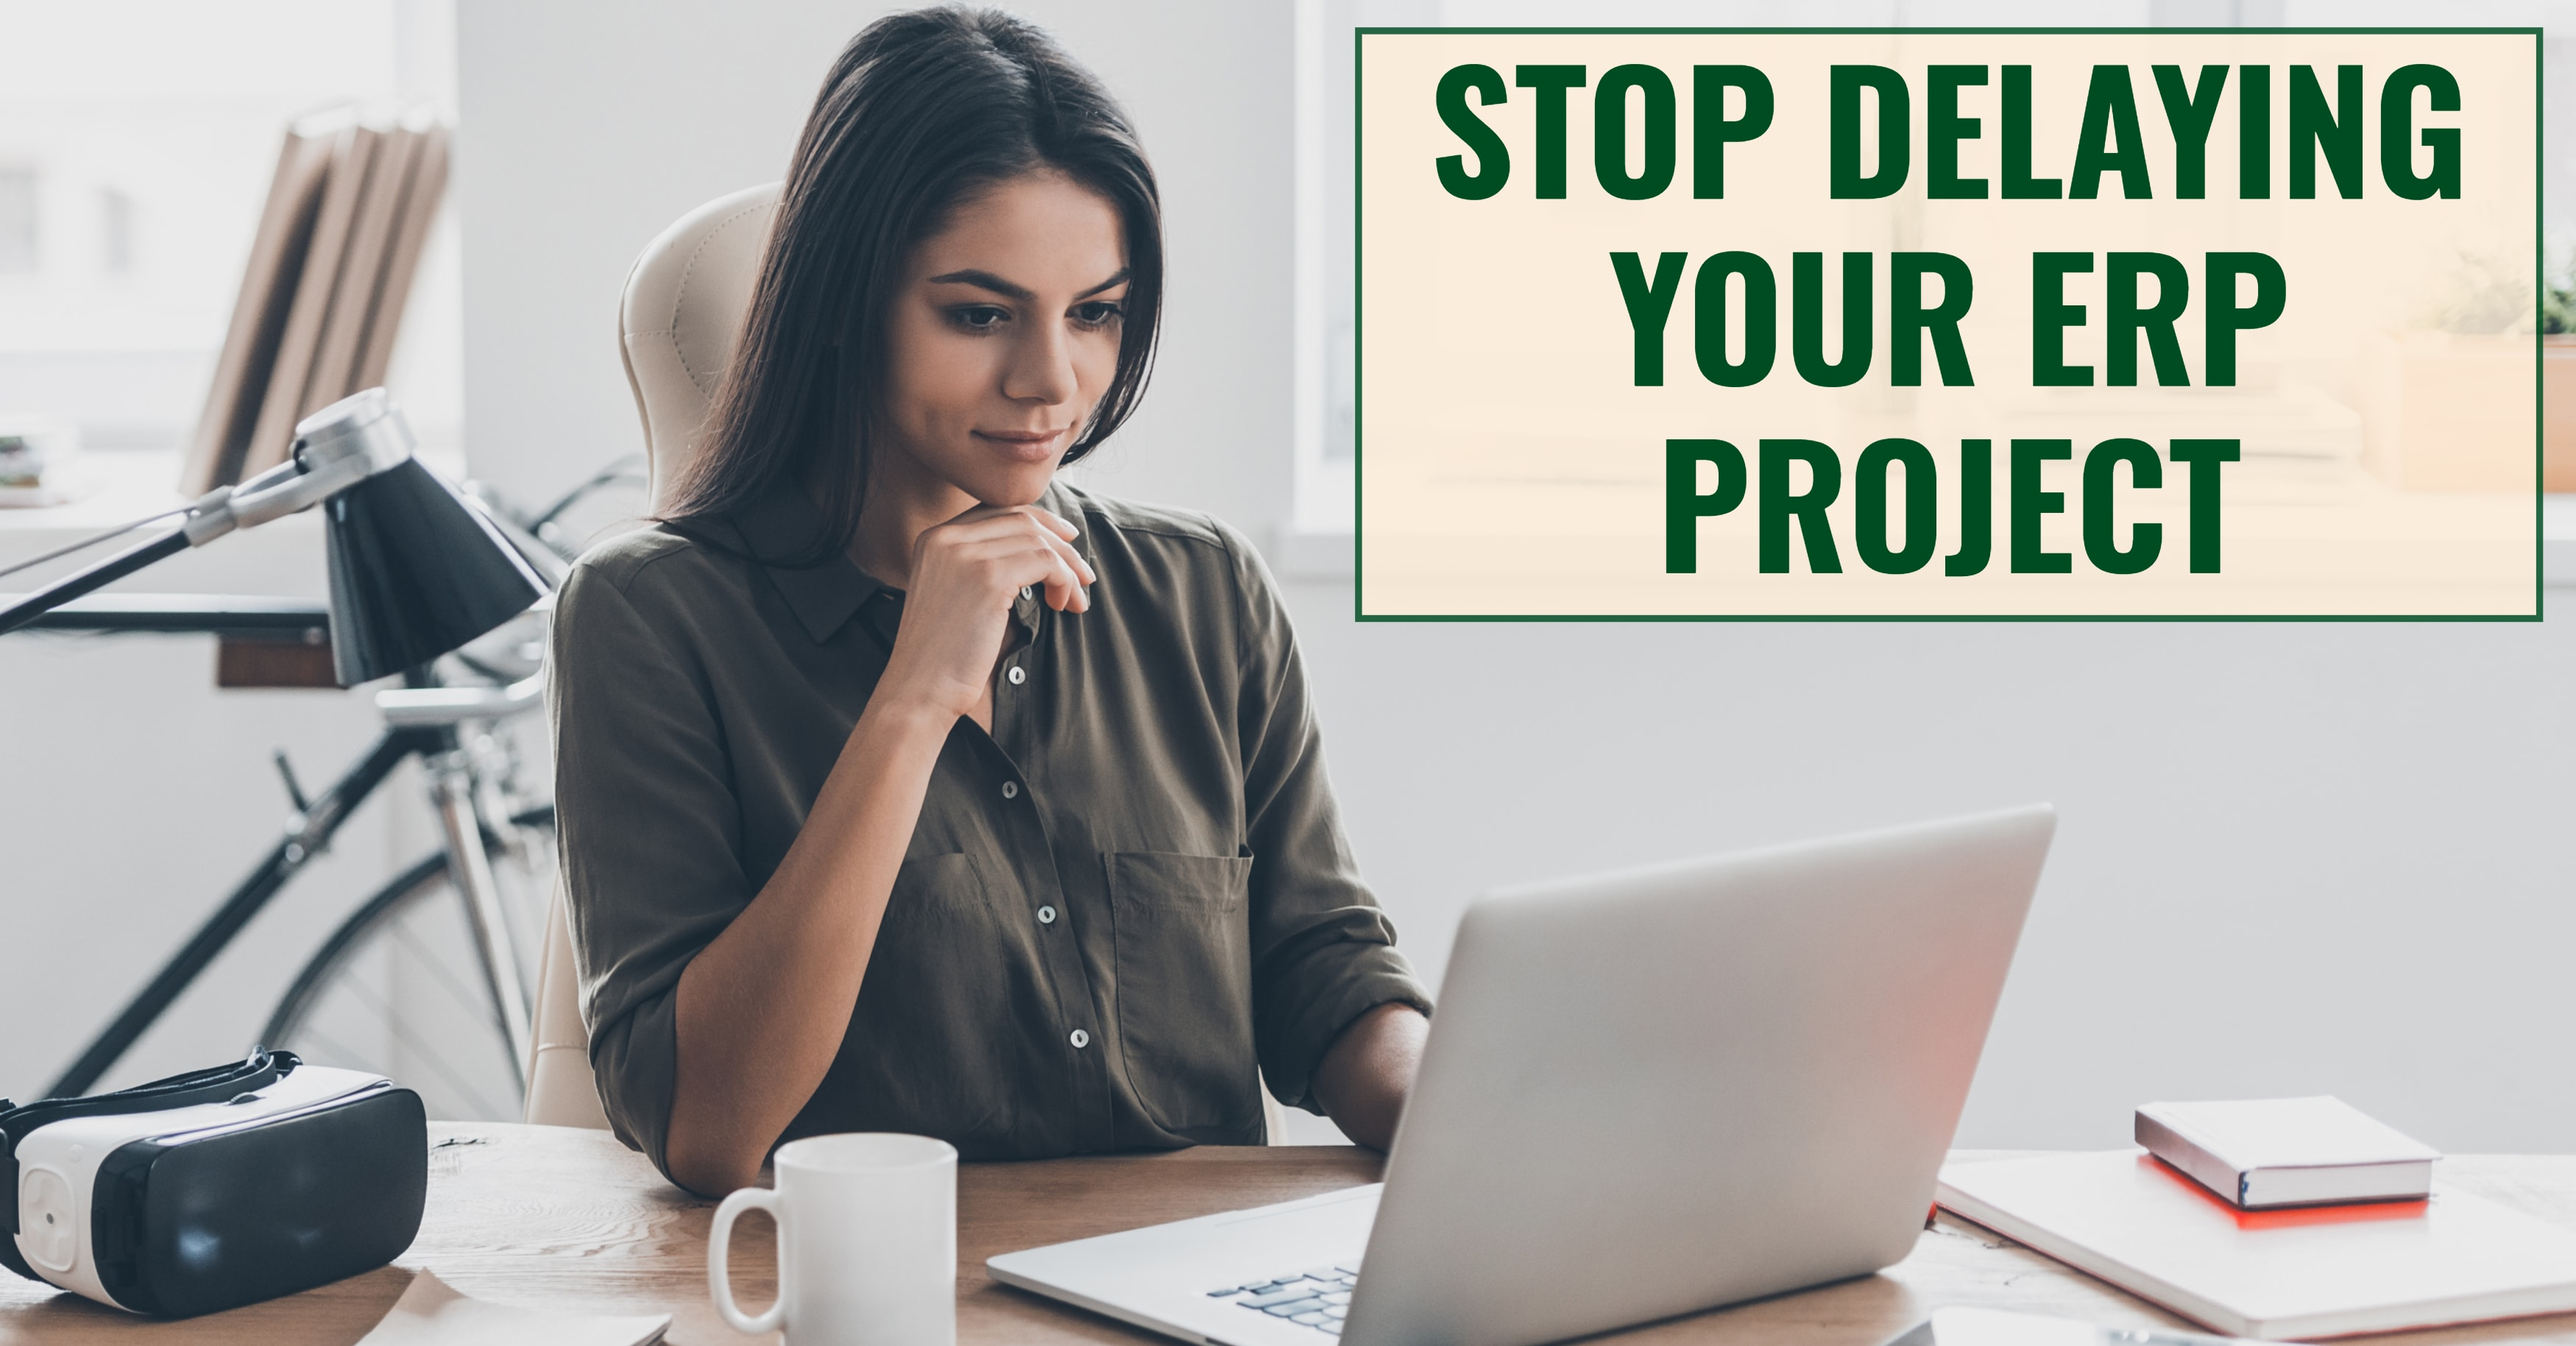 Stop Delaying Your ERP Project